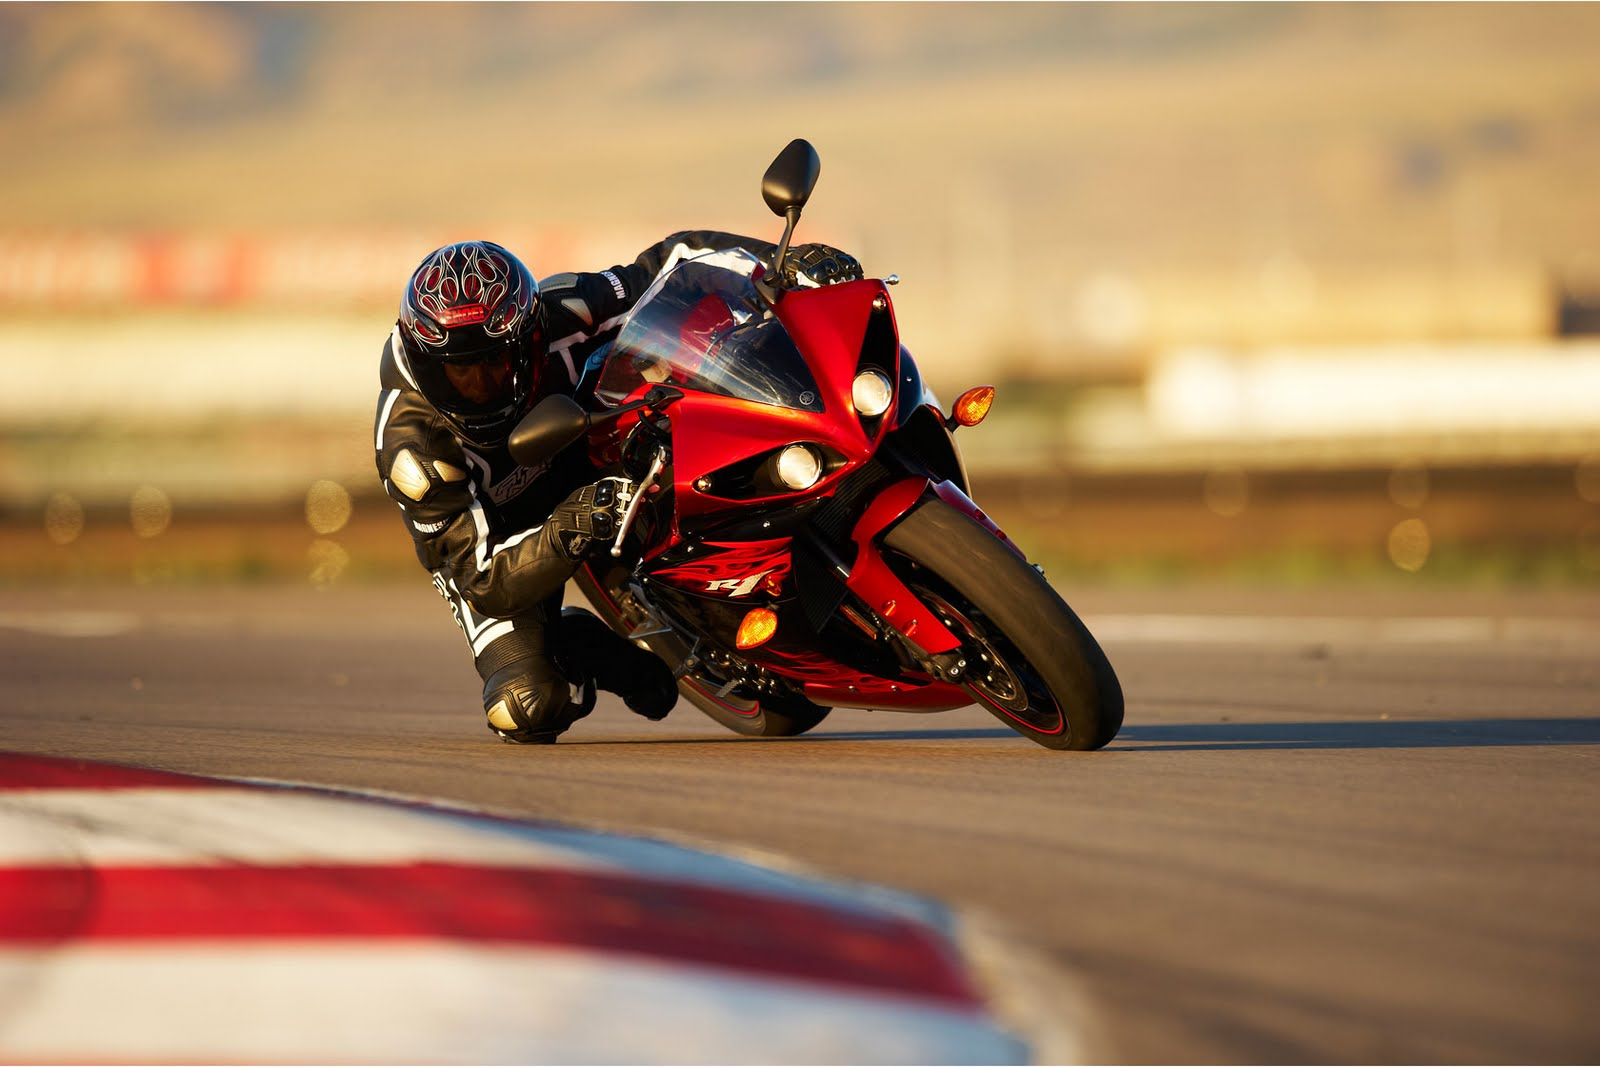 2011 YZF R1 BIKES AND MOTOR SPORT PICTURE WALLPAPER AND PHOTOS 1600x1067